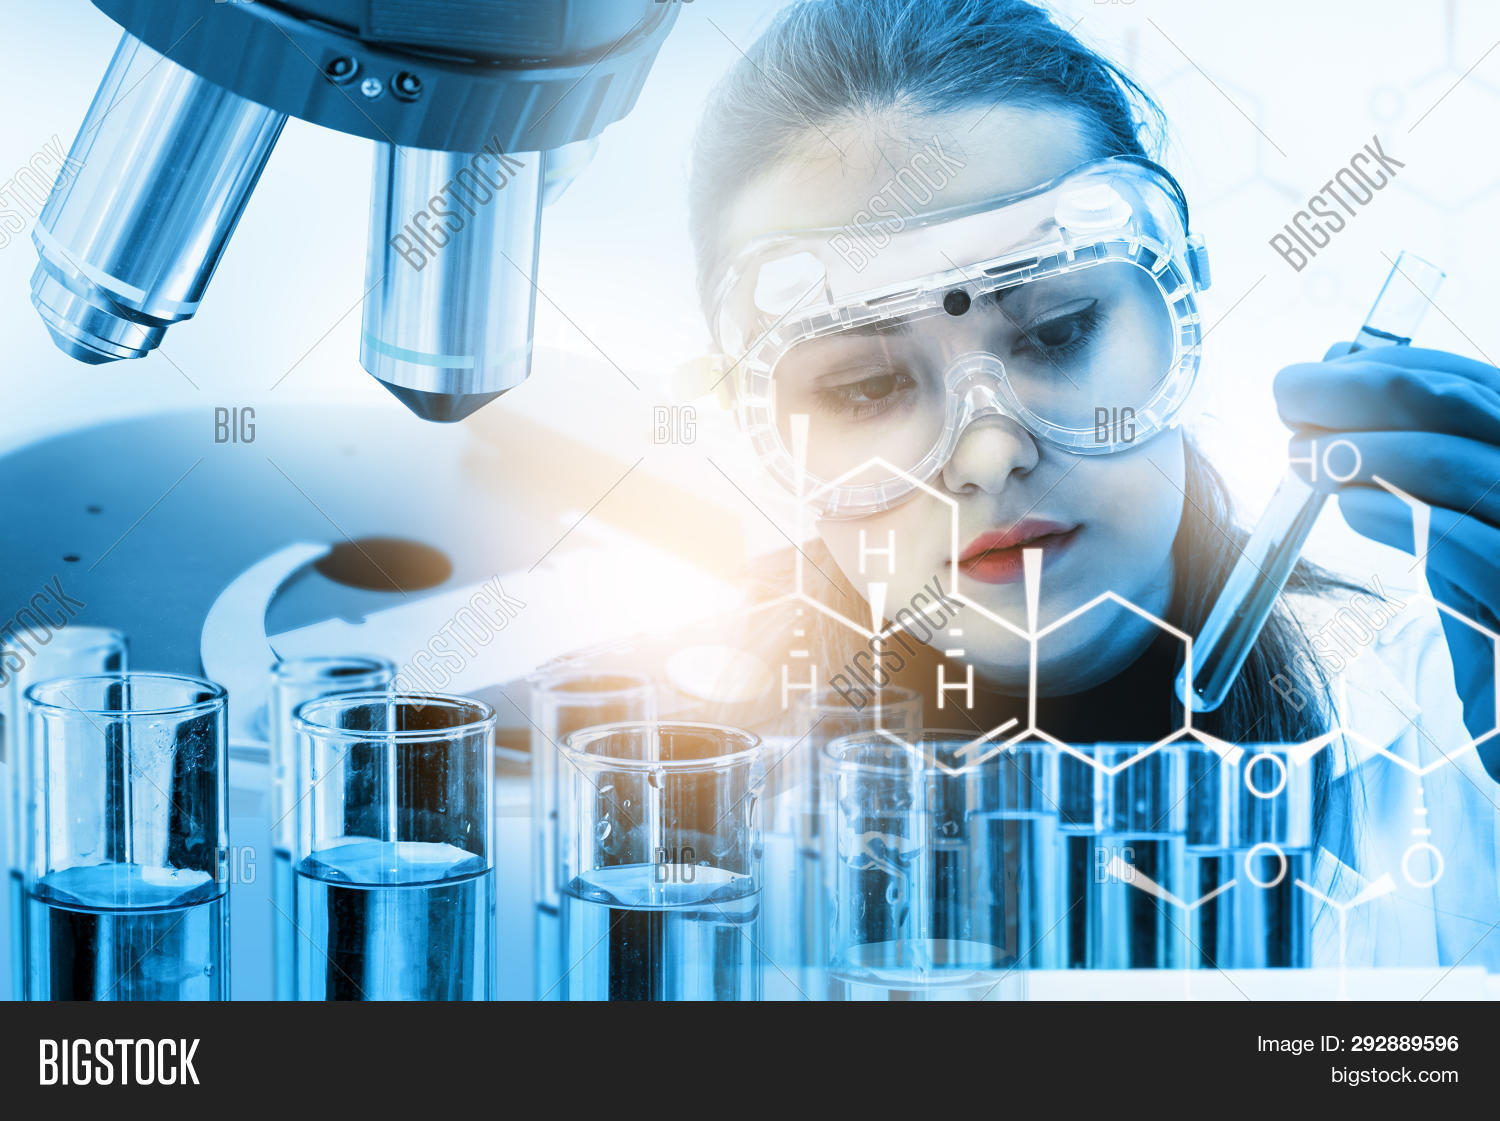 analysis,background,beaker,biochemist,biochemistry,biology,biotechnology,blue,chemical,chemist,chemistry,clinic,development,discovery,dna,doctor,drop,drug,education,equipment,experiment,flask,fuel,glass,glassware,health,healthcare,hospital,industry,investigation,lab,laboratory,liquid,medical,medicine,microbiology,microscope,people,pharmaceutical,pharmacy,professional,research,sample,science,scientific,scientist,study,technology,test,tube